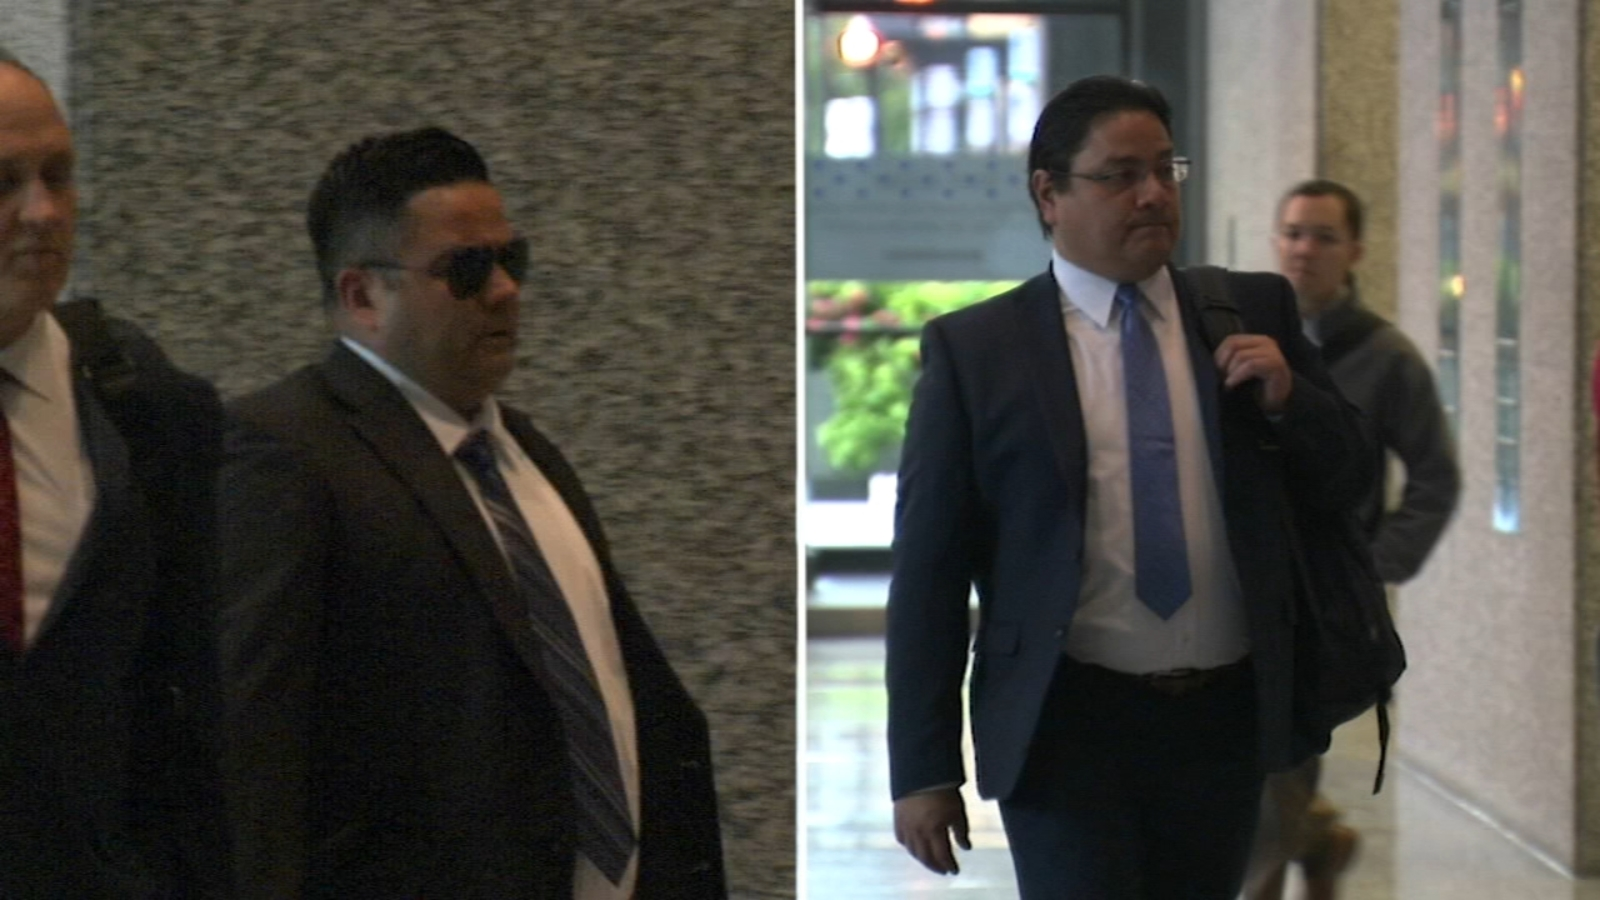 Informant, judge testify in trial of Chicago police officers accused of stealing drugs, cash